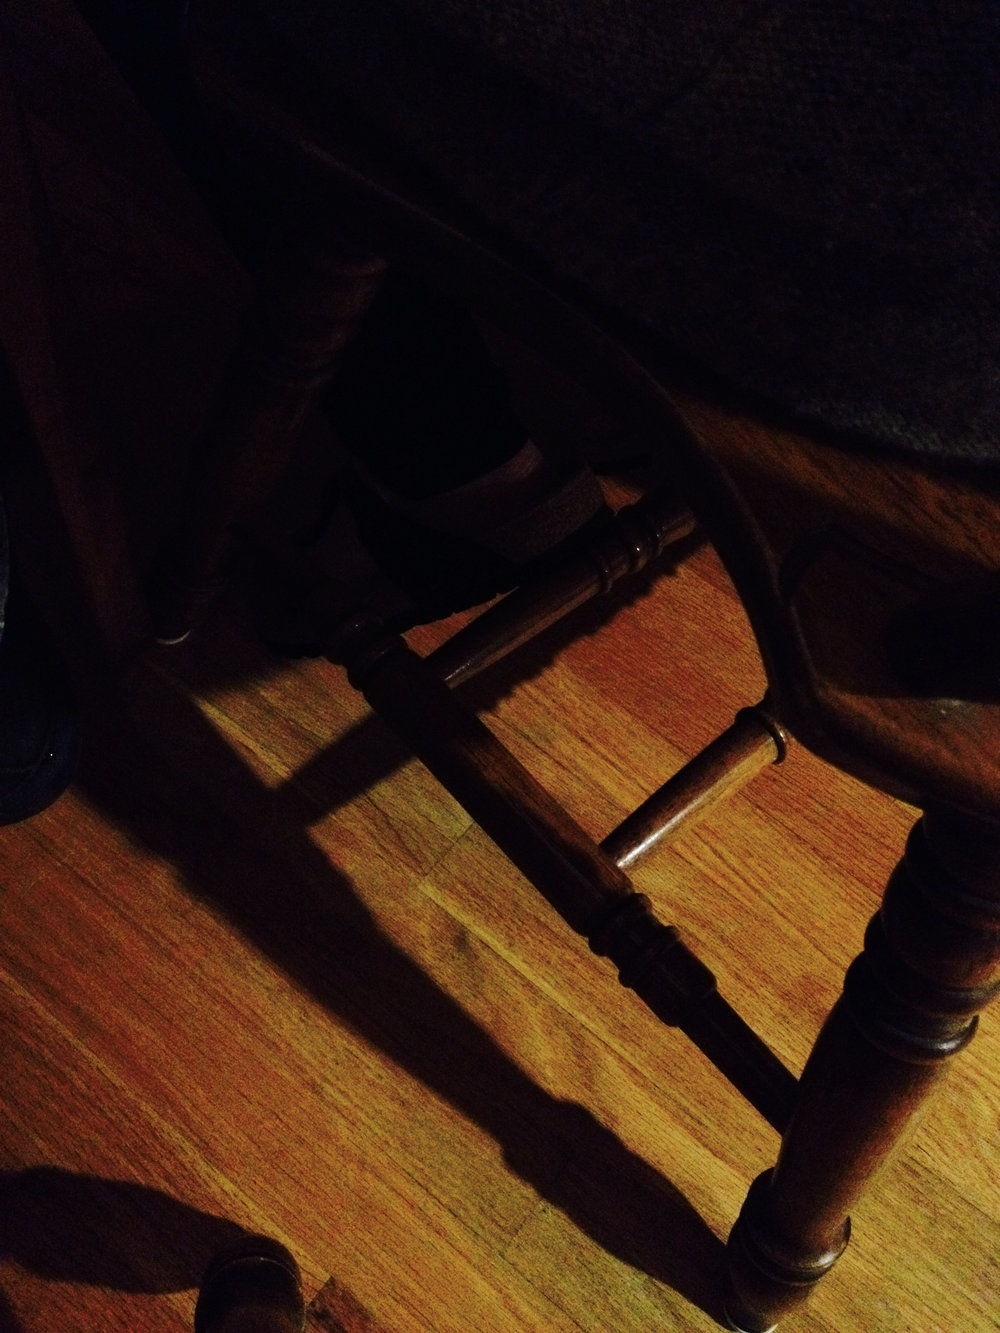 Chair leg. Madison, Wisconsin. October 2016. © William D. Walker